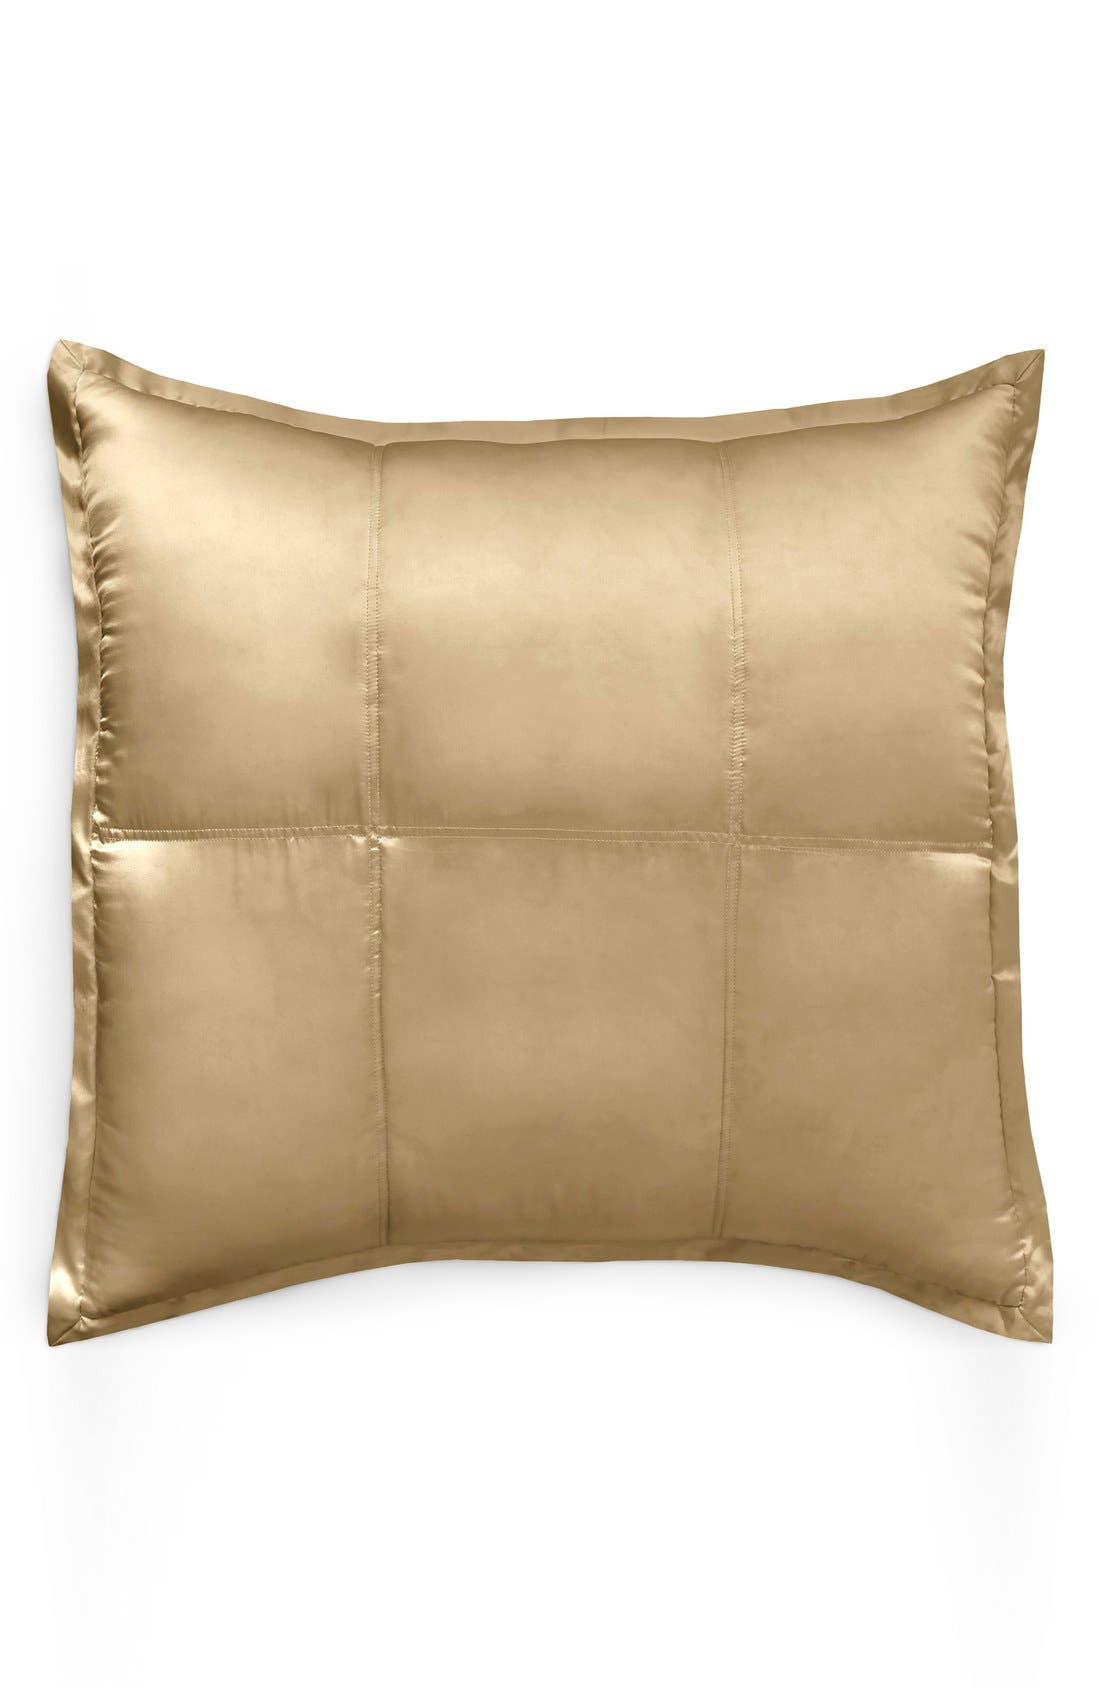 Donna Karan Collection 'Reflection' Euro Sham,                         Main,                         color,